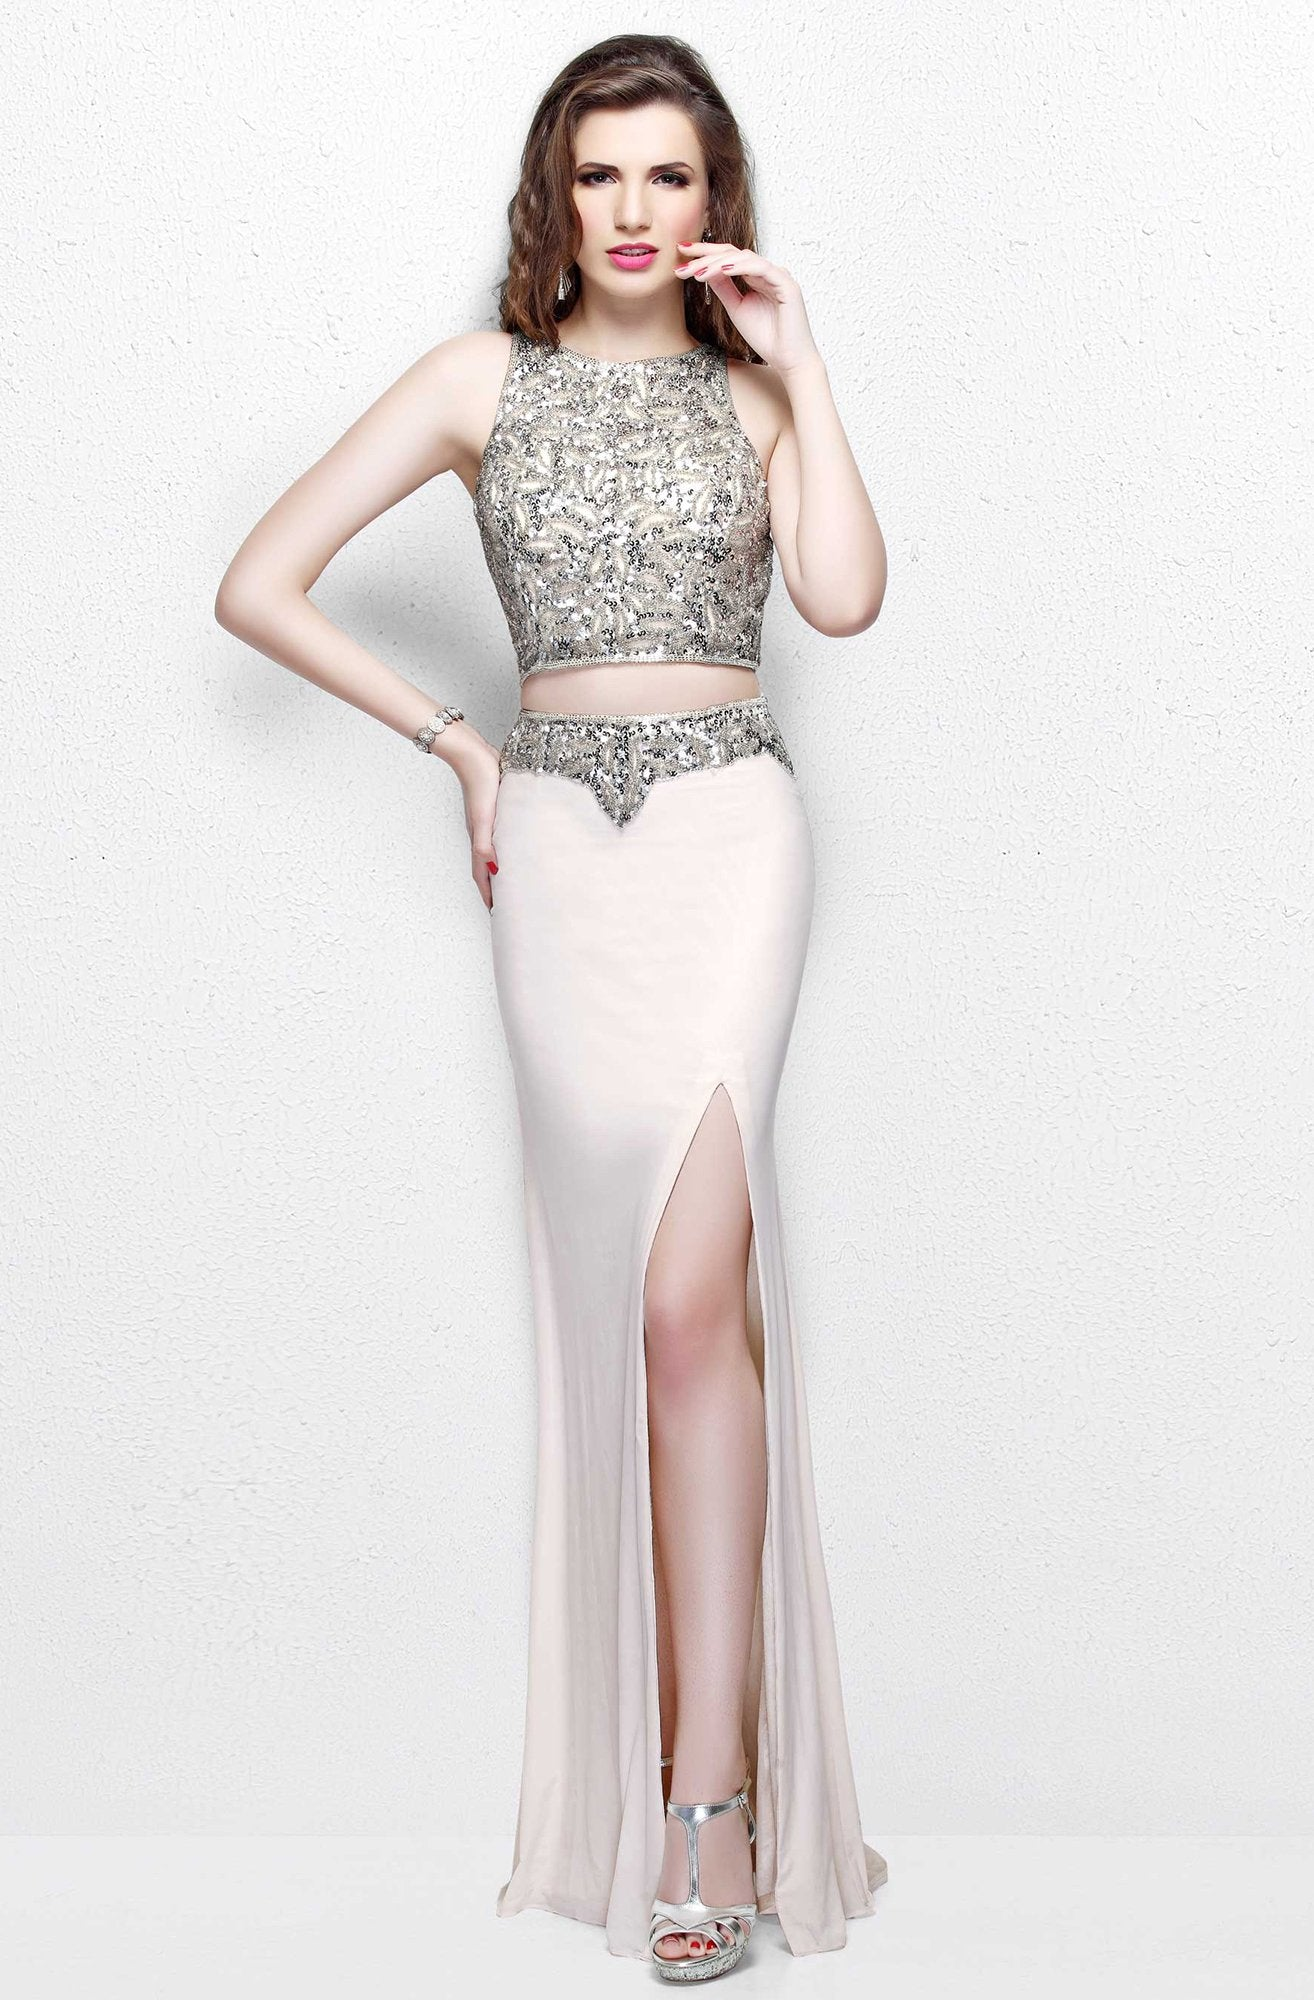 Primavera Couture - Two Piece Halter Long Gown with a Slit 1822 in Nude